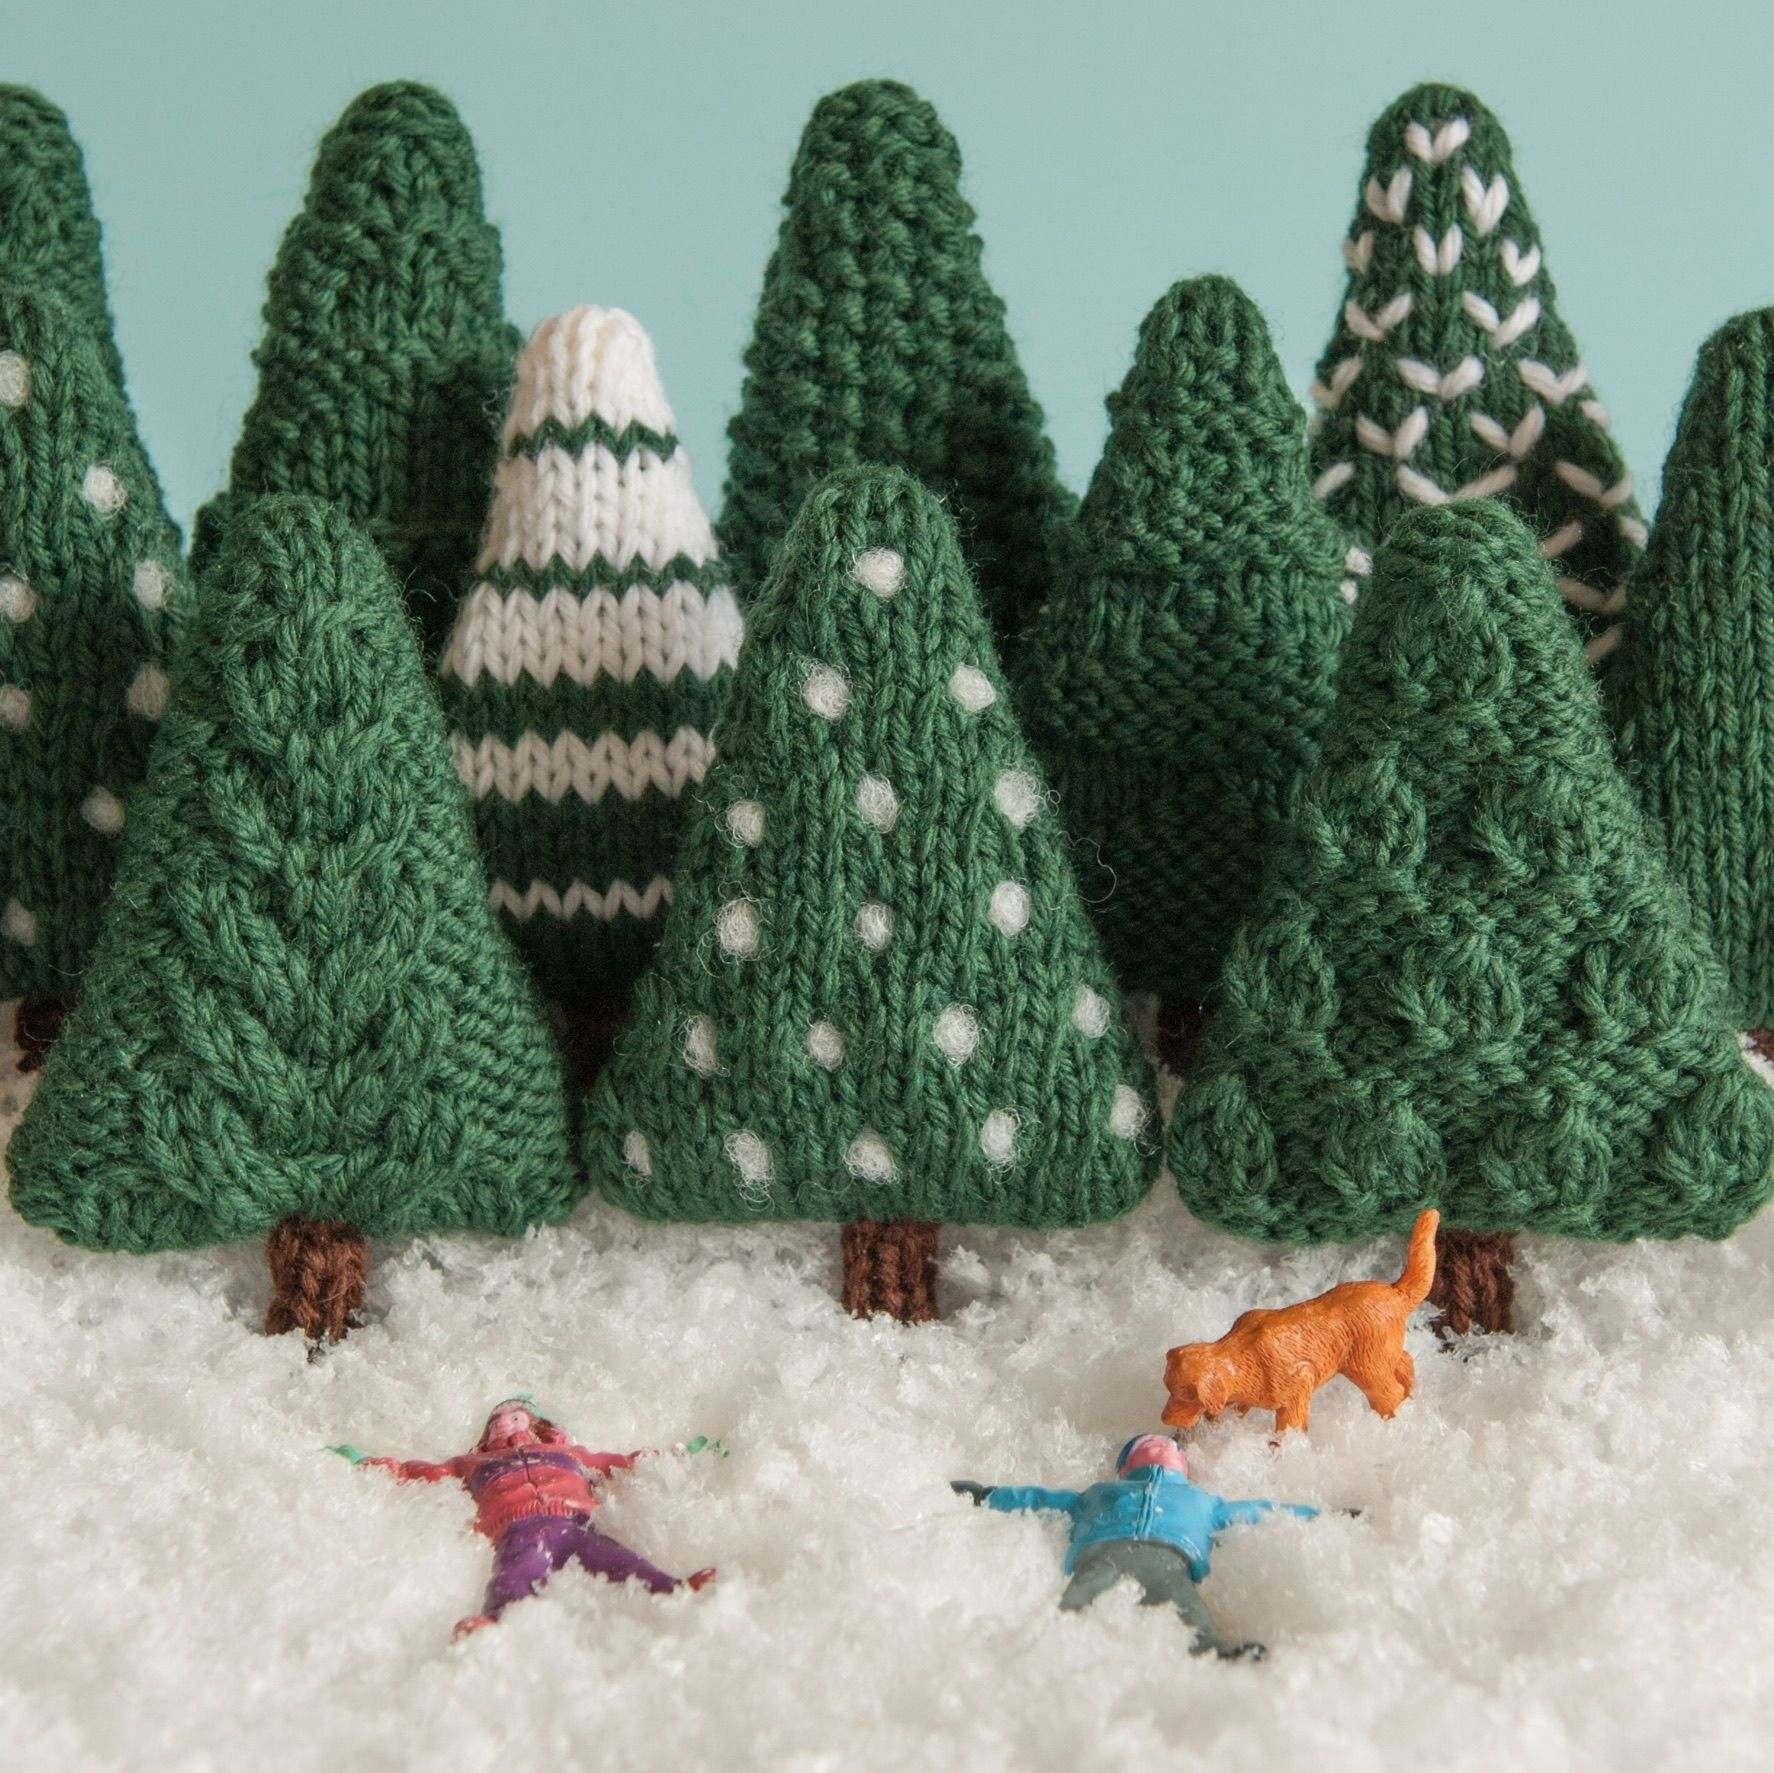 Christmas Trees 2 | Knit patterns, Christmas tree and Patterns